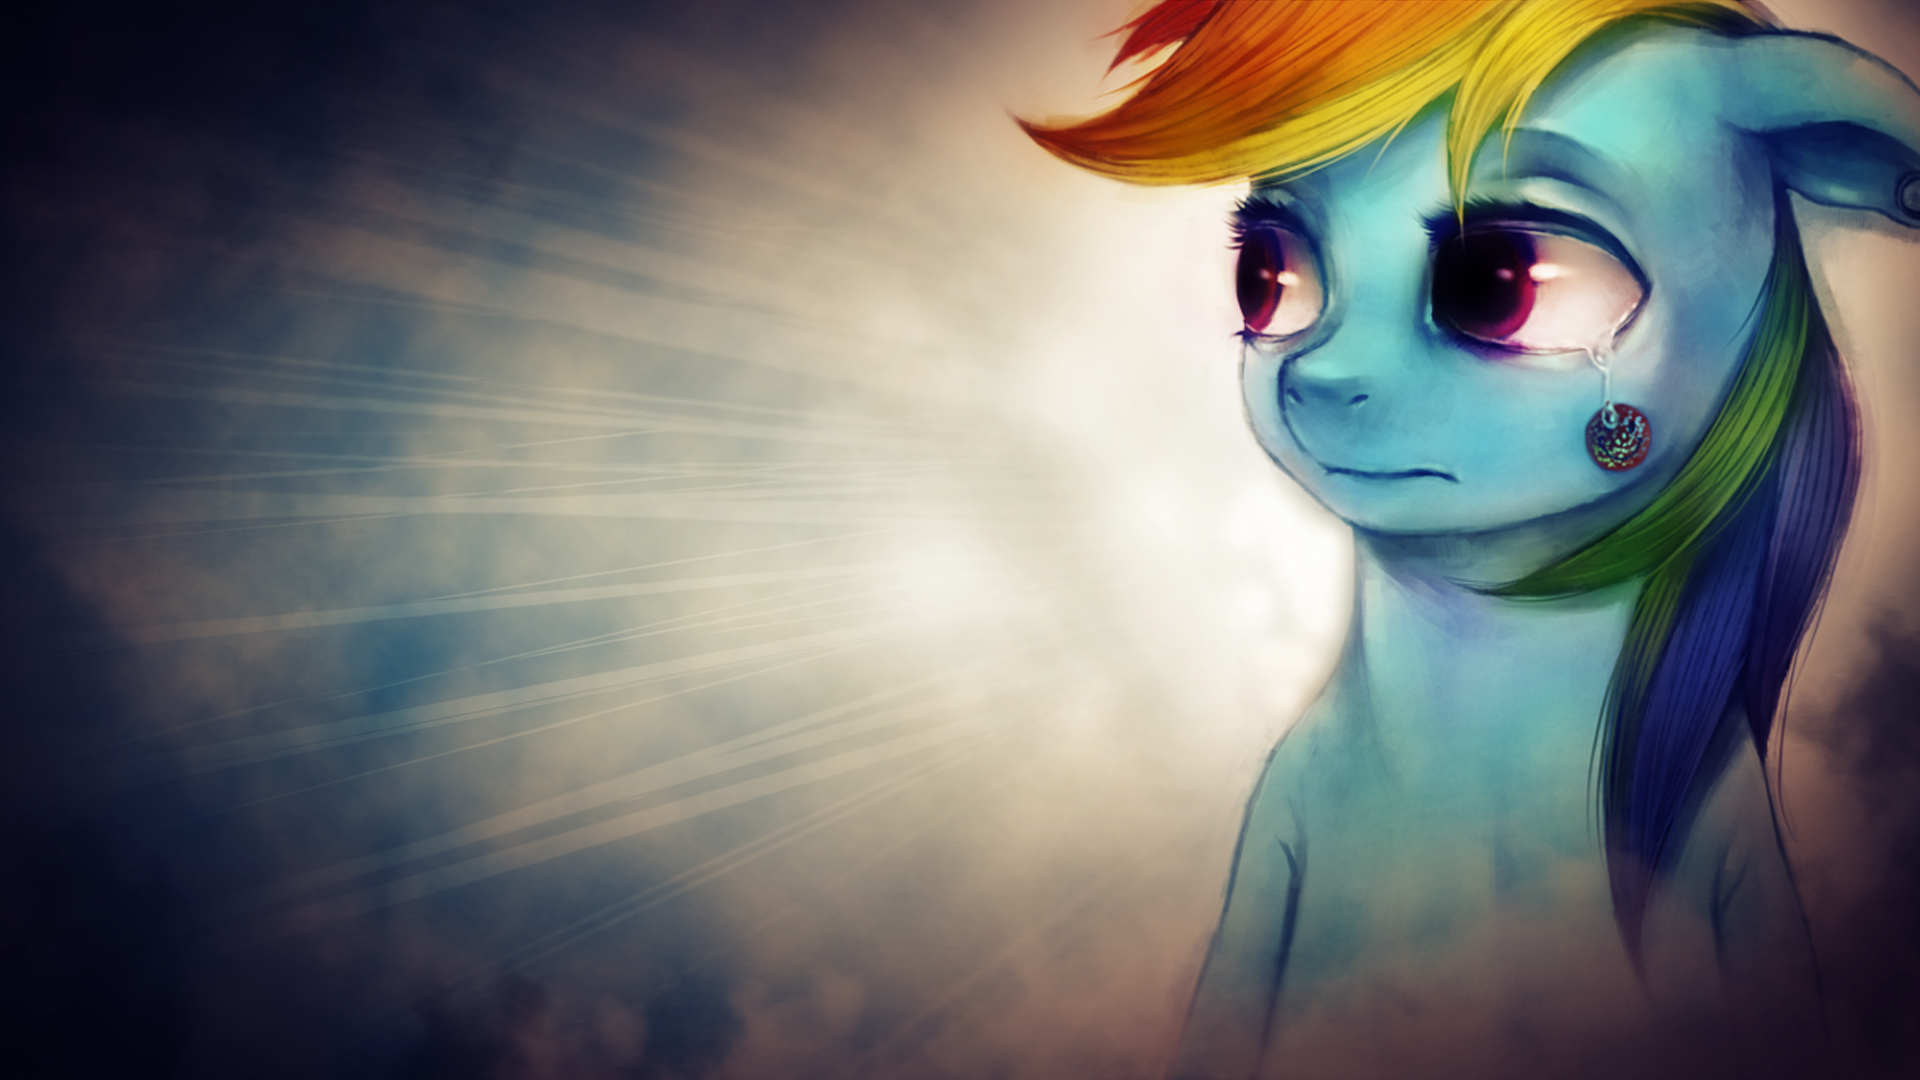 Rainbow Dash emulating Wallpaper by SandwichDelta